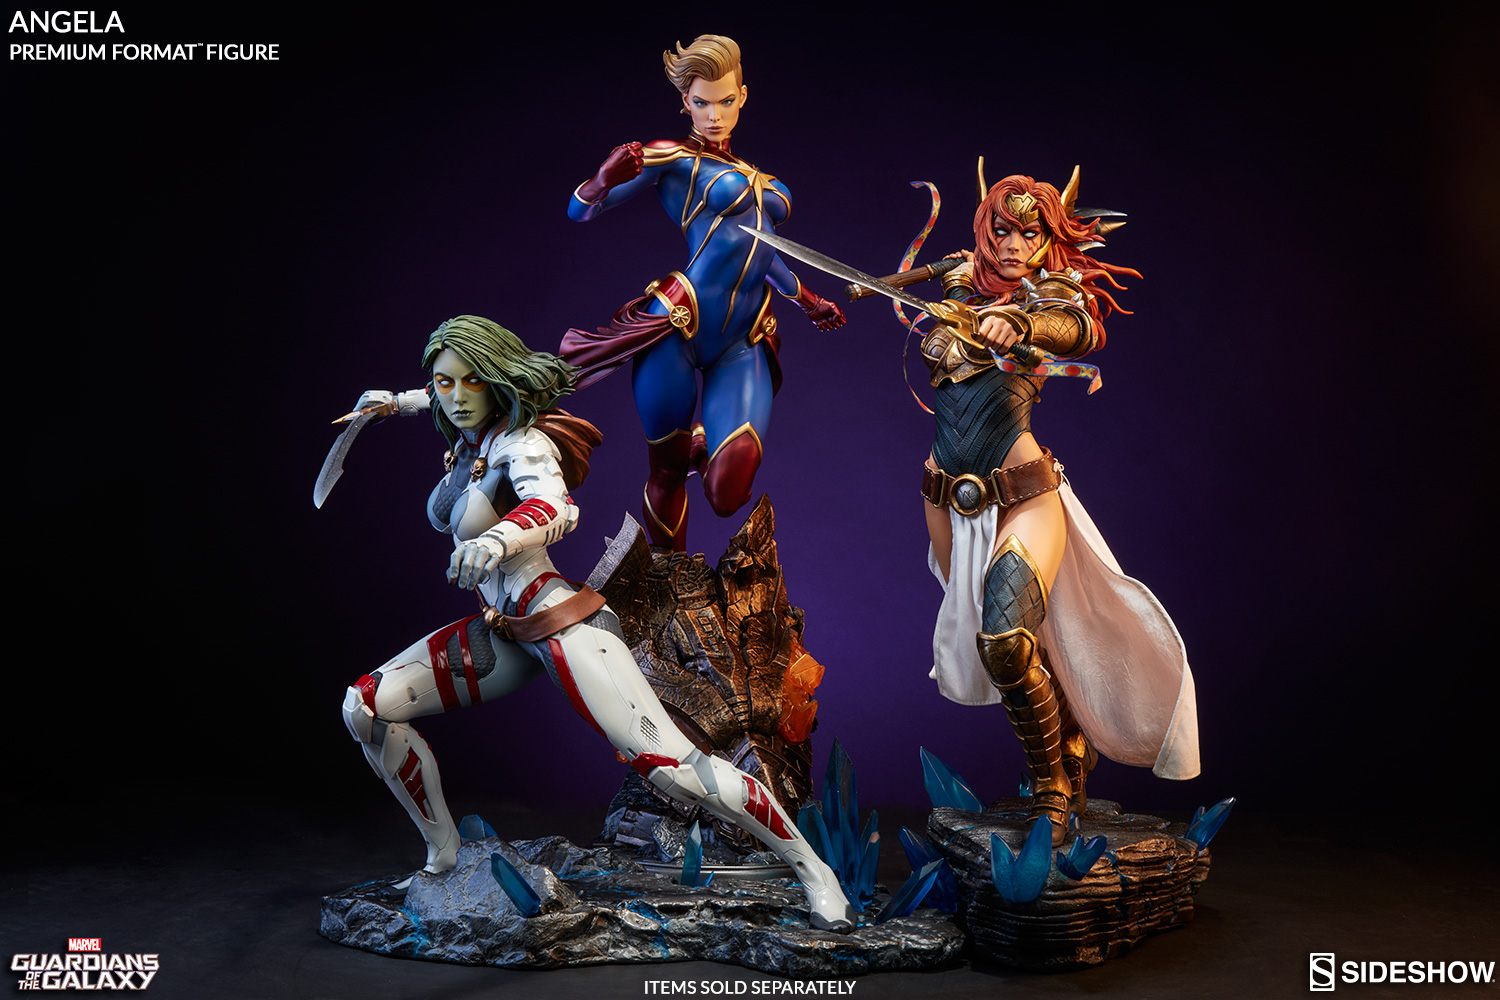 Link a marvel-guardians-of-the-galaxy-angela-premium-format-300463-16